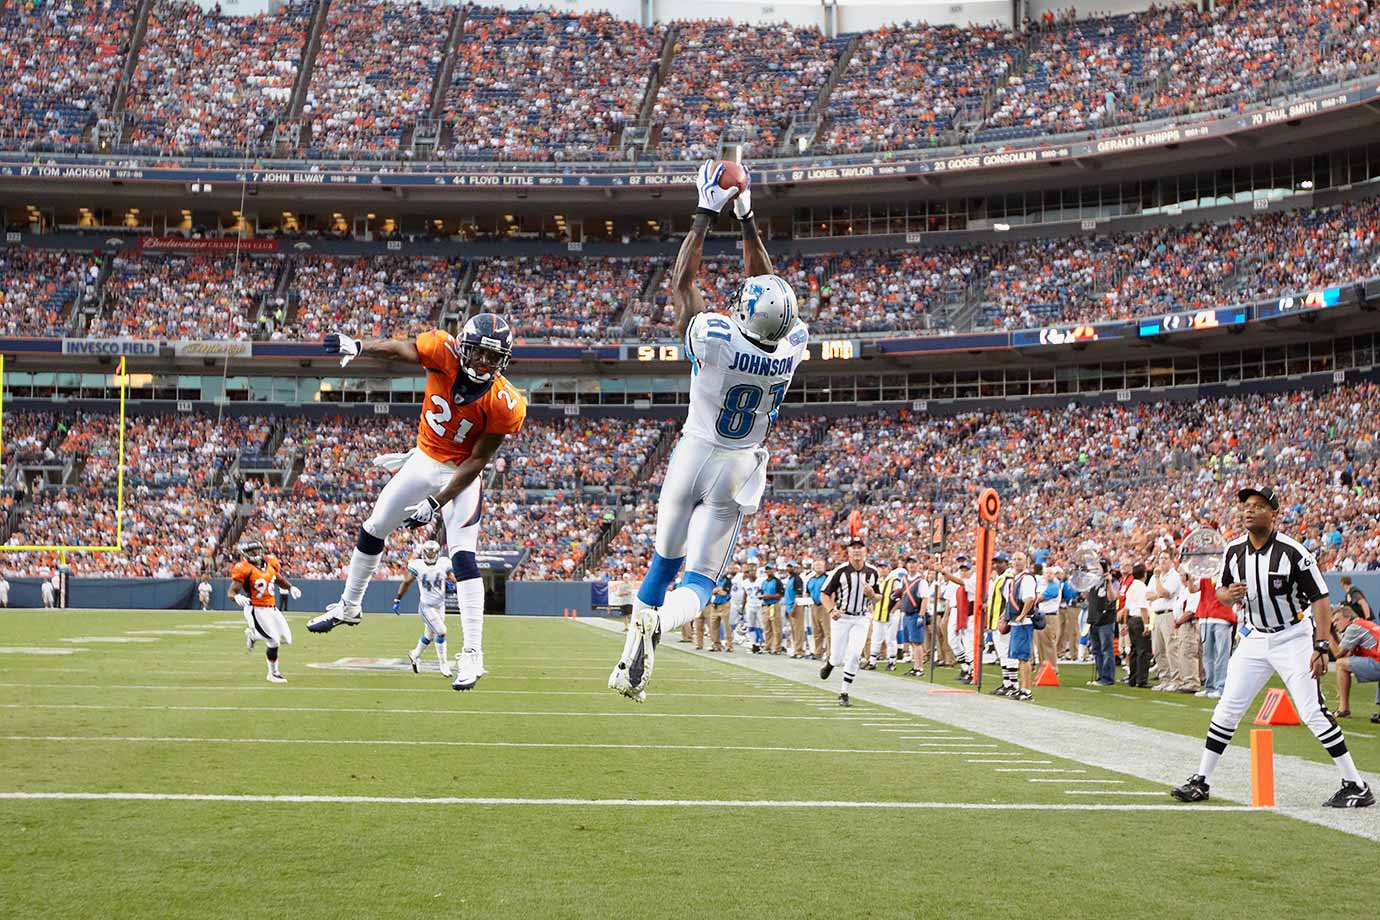 Aug. 21, 2010 — Detroit Lions vs. Denver Broncos